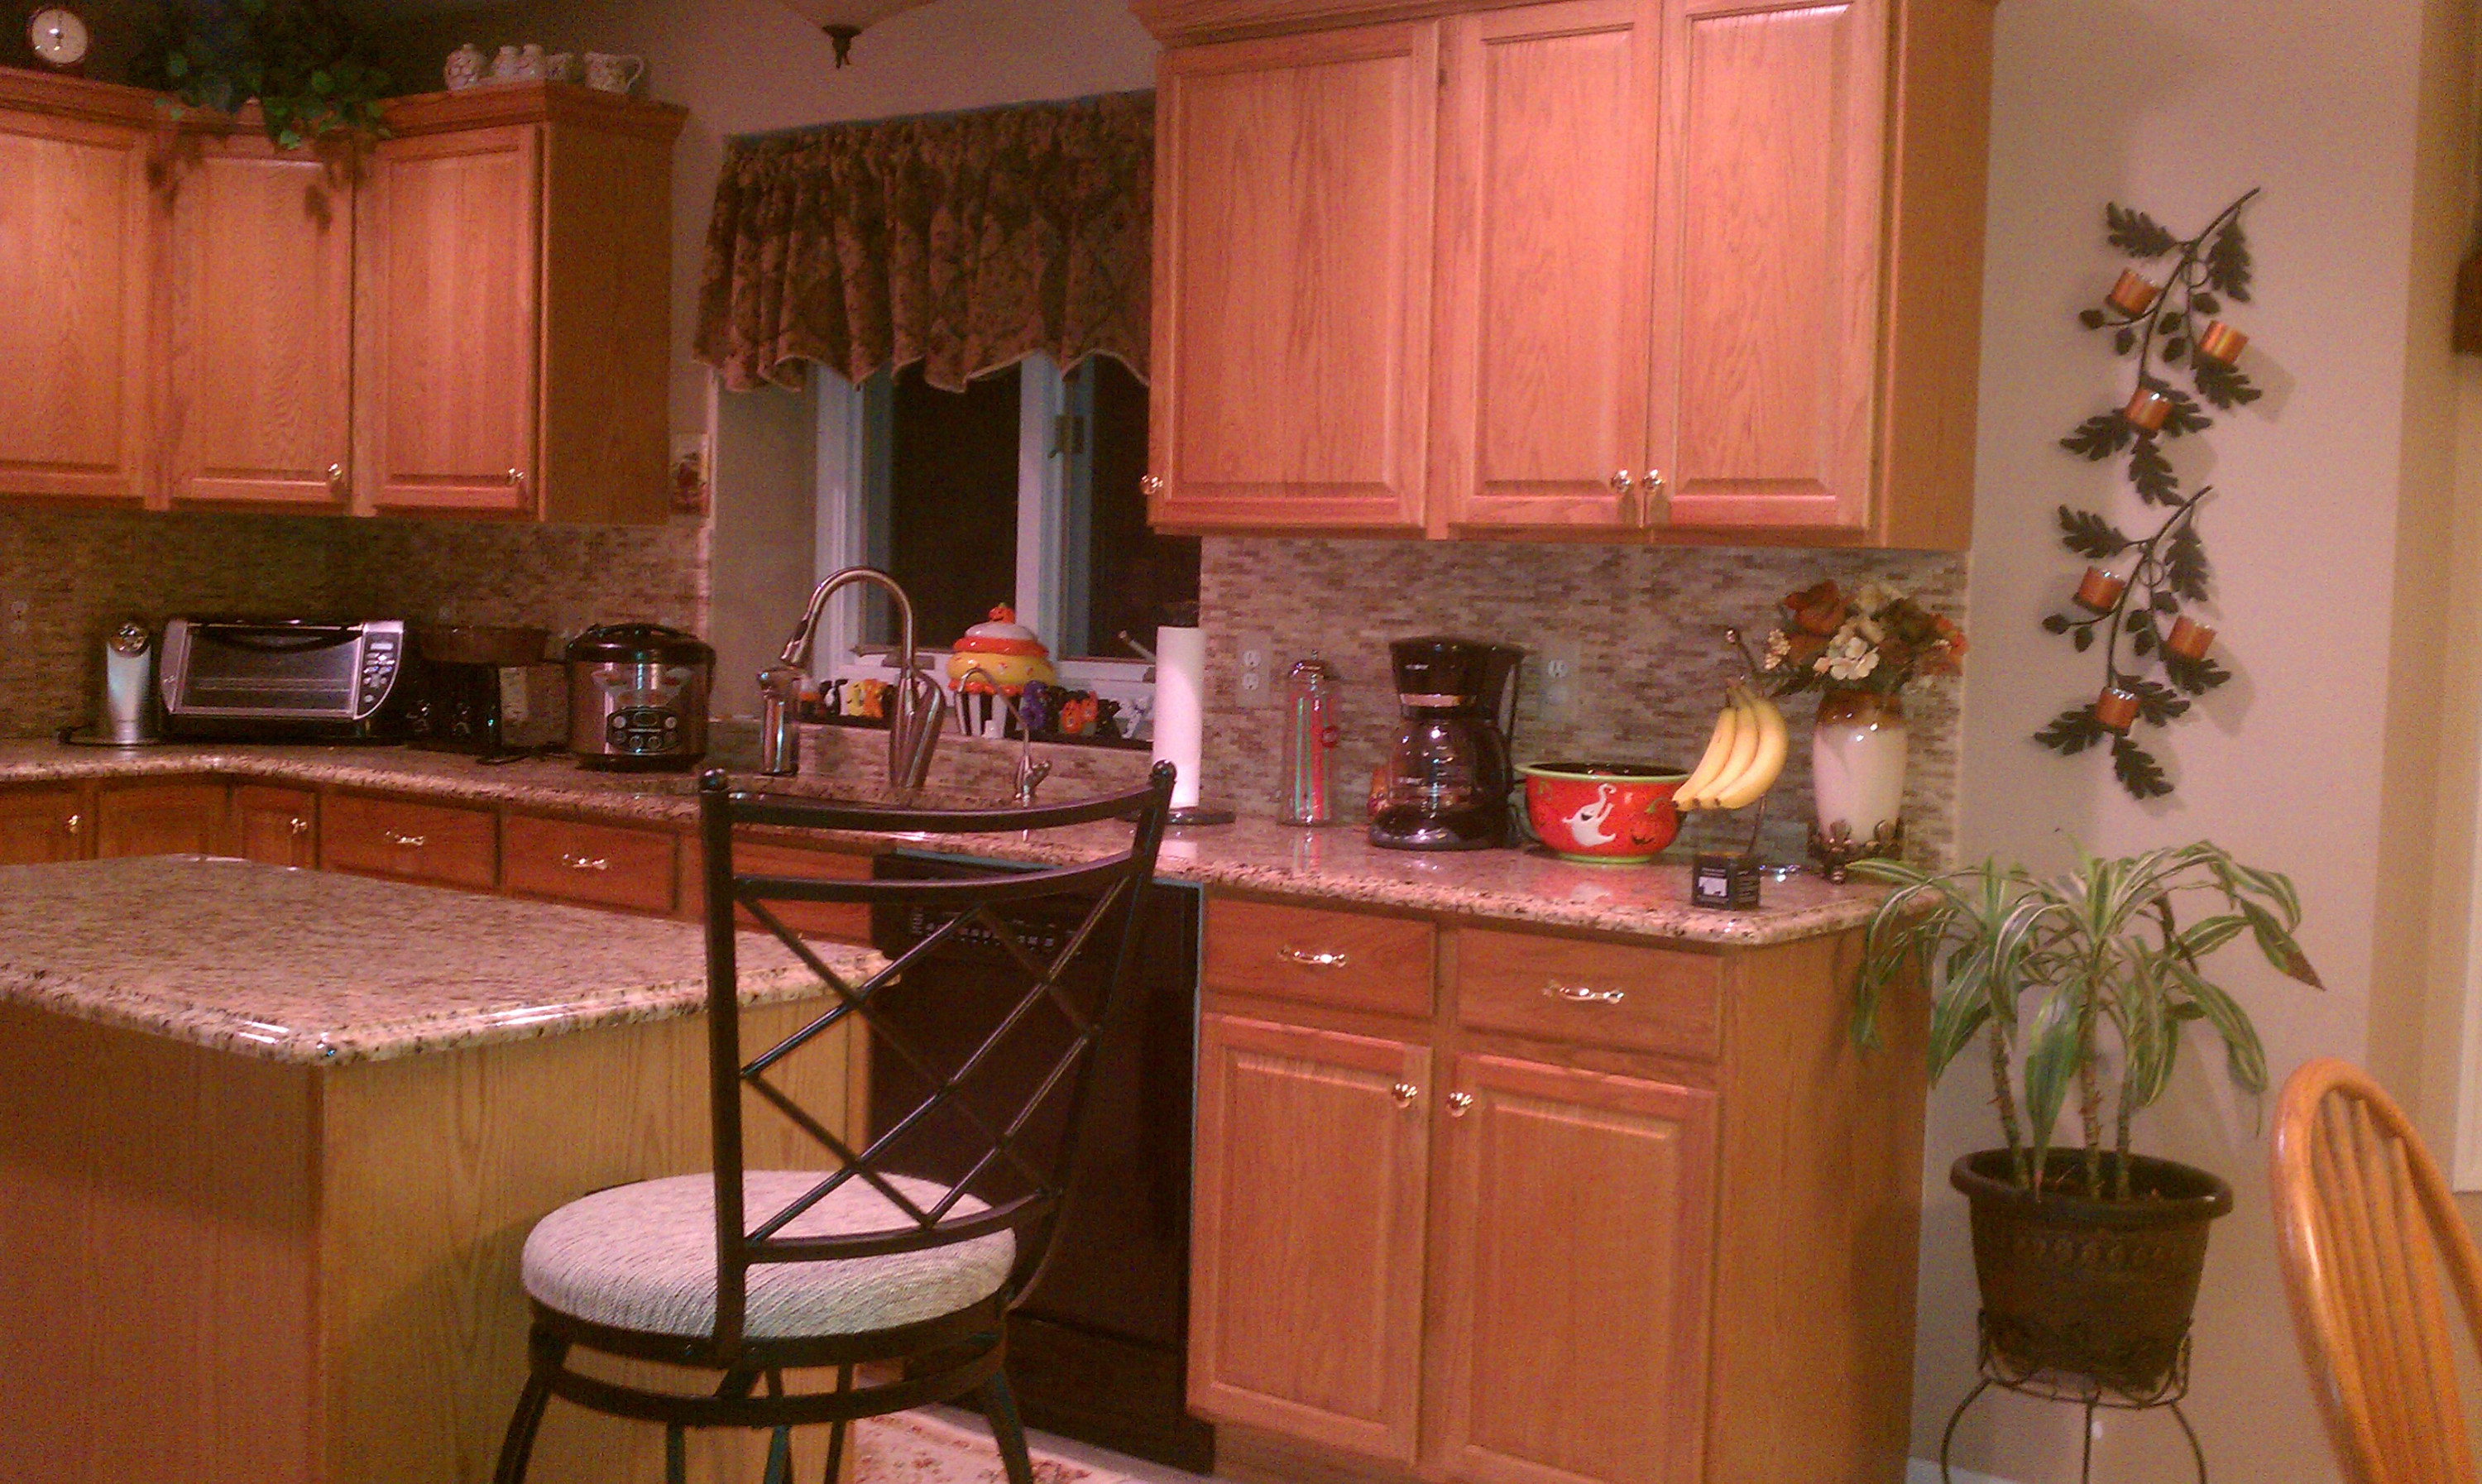 Does Dining Table And Kitchen Cabinets Have To Match Imag1171 Jpg